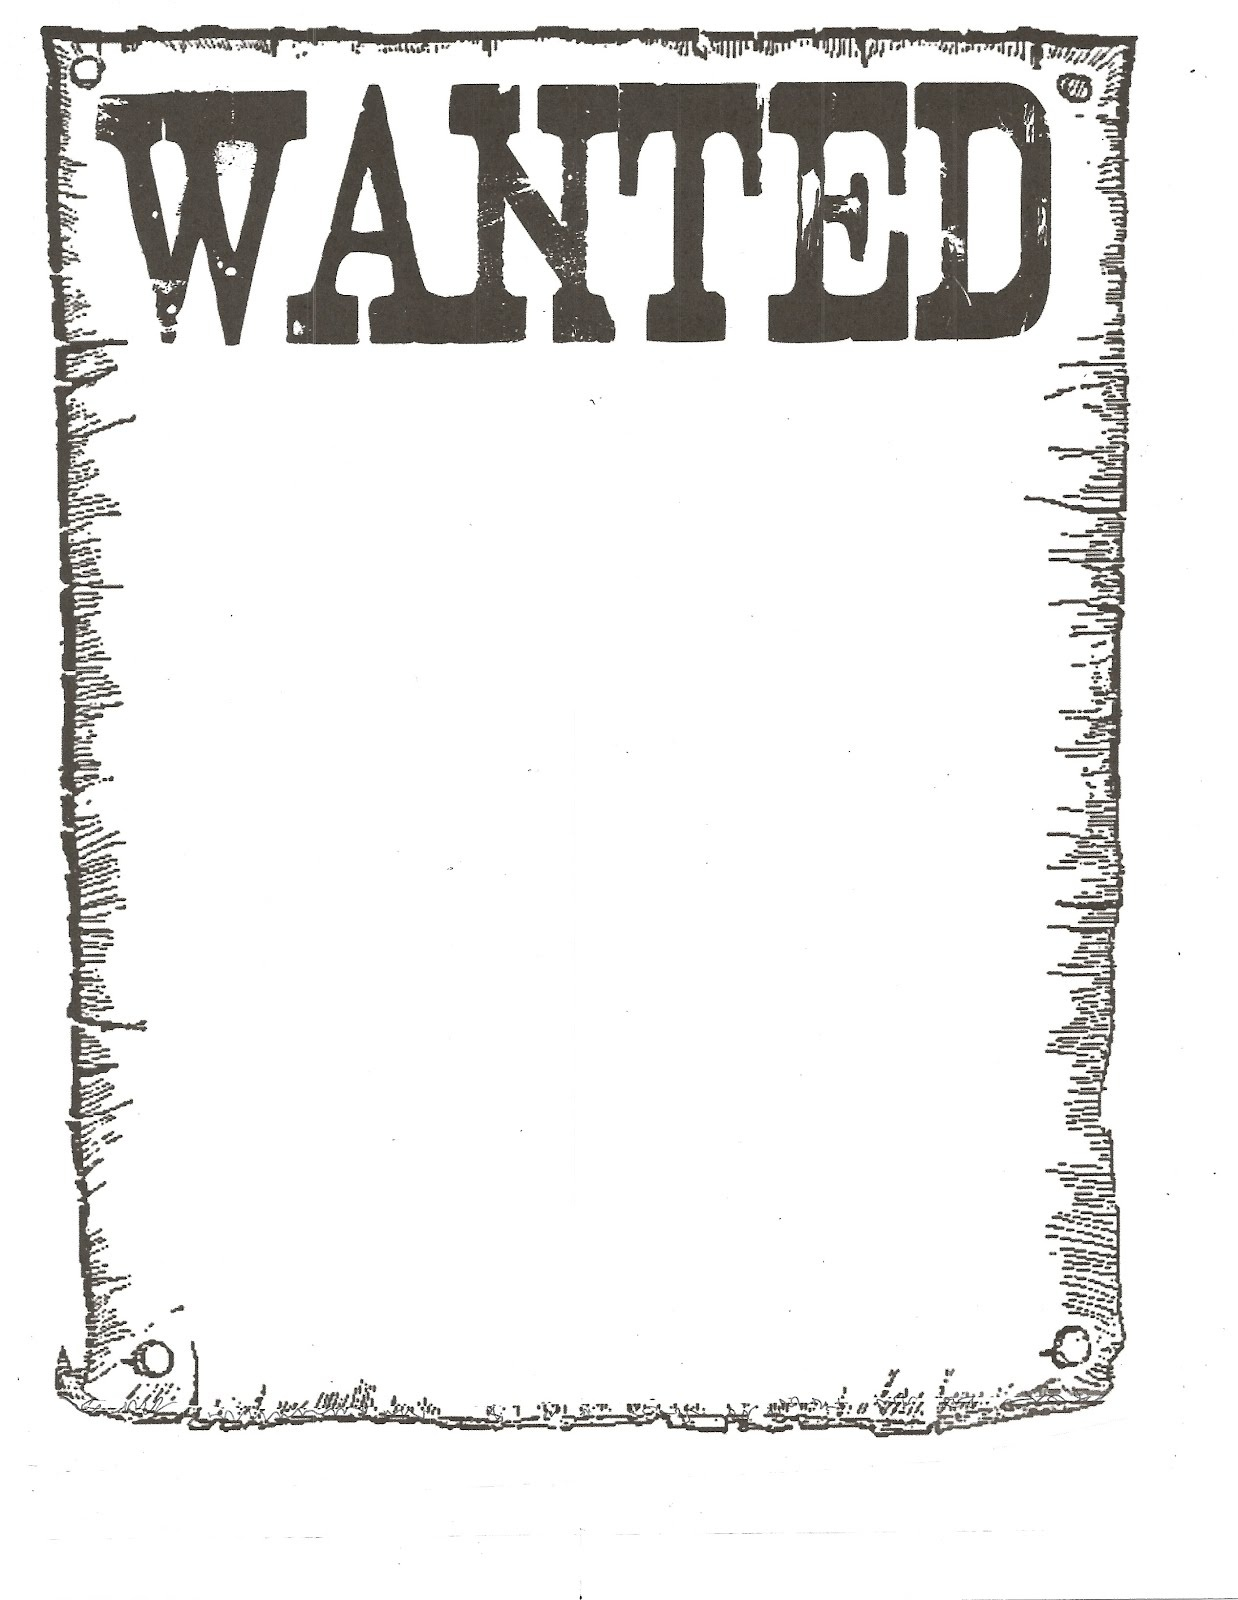 Classroom Freebies Wanted Poster | Gameshd - Clip Art Library - Wanted Poster Printable Free